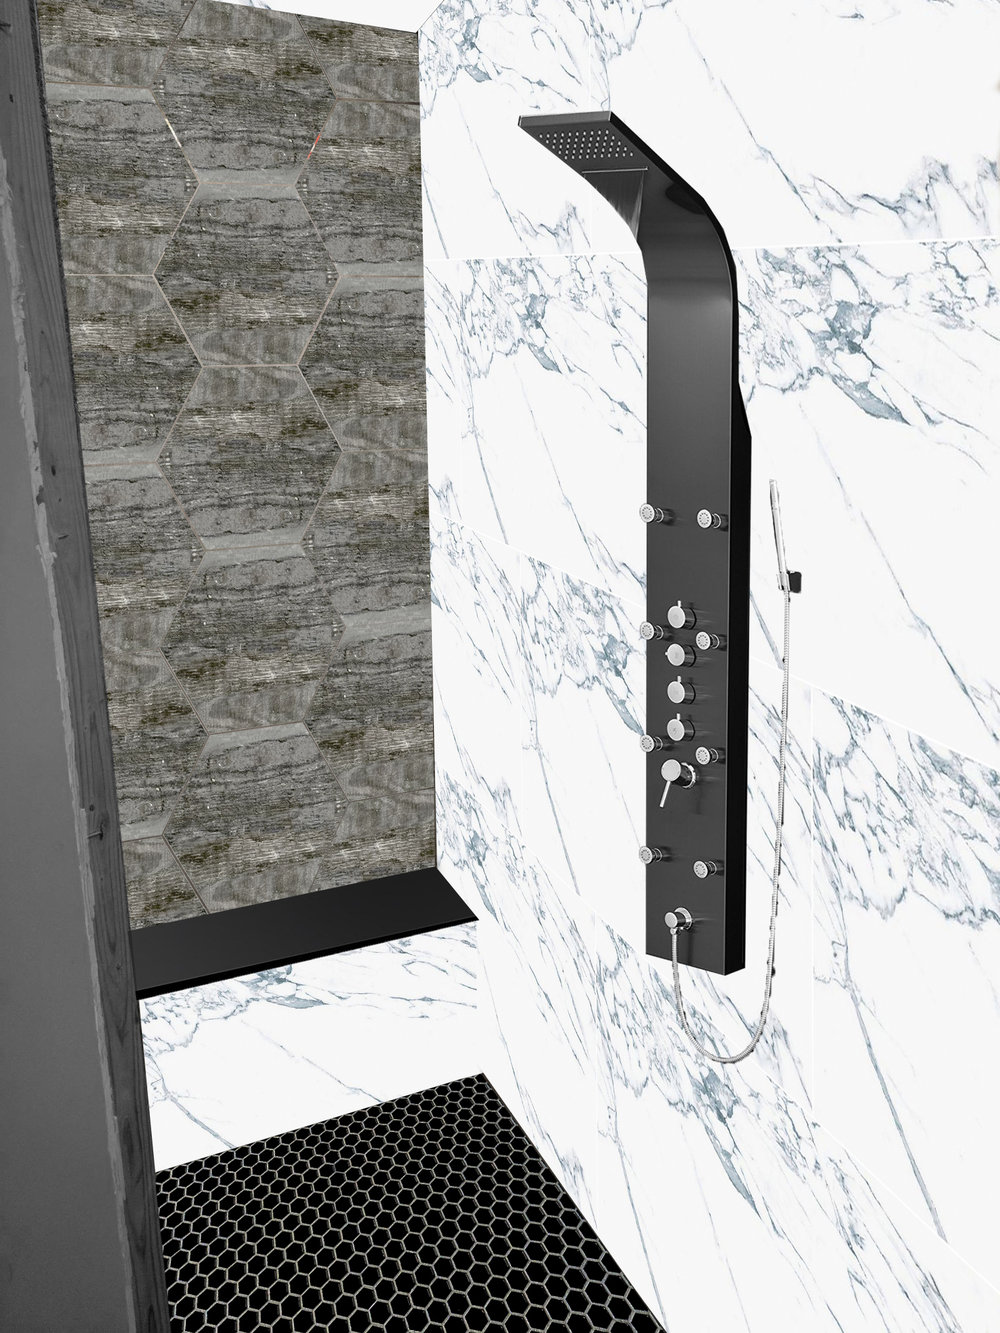 showerrendering.jpg